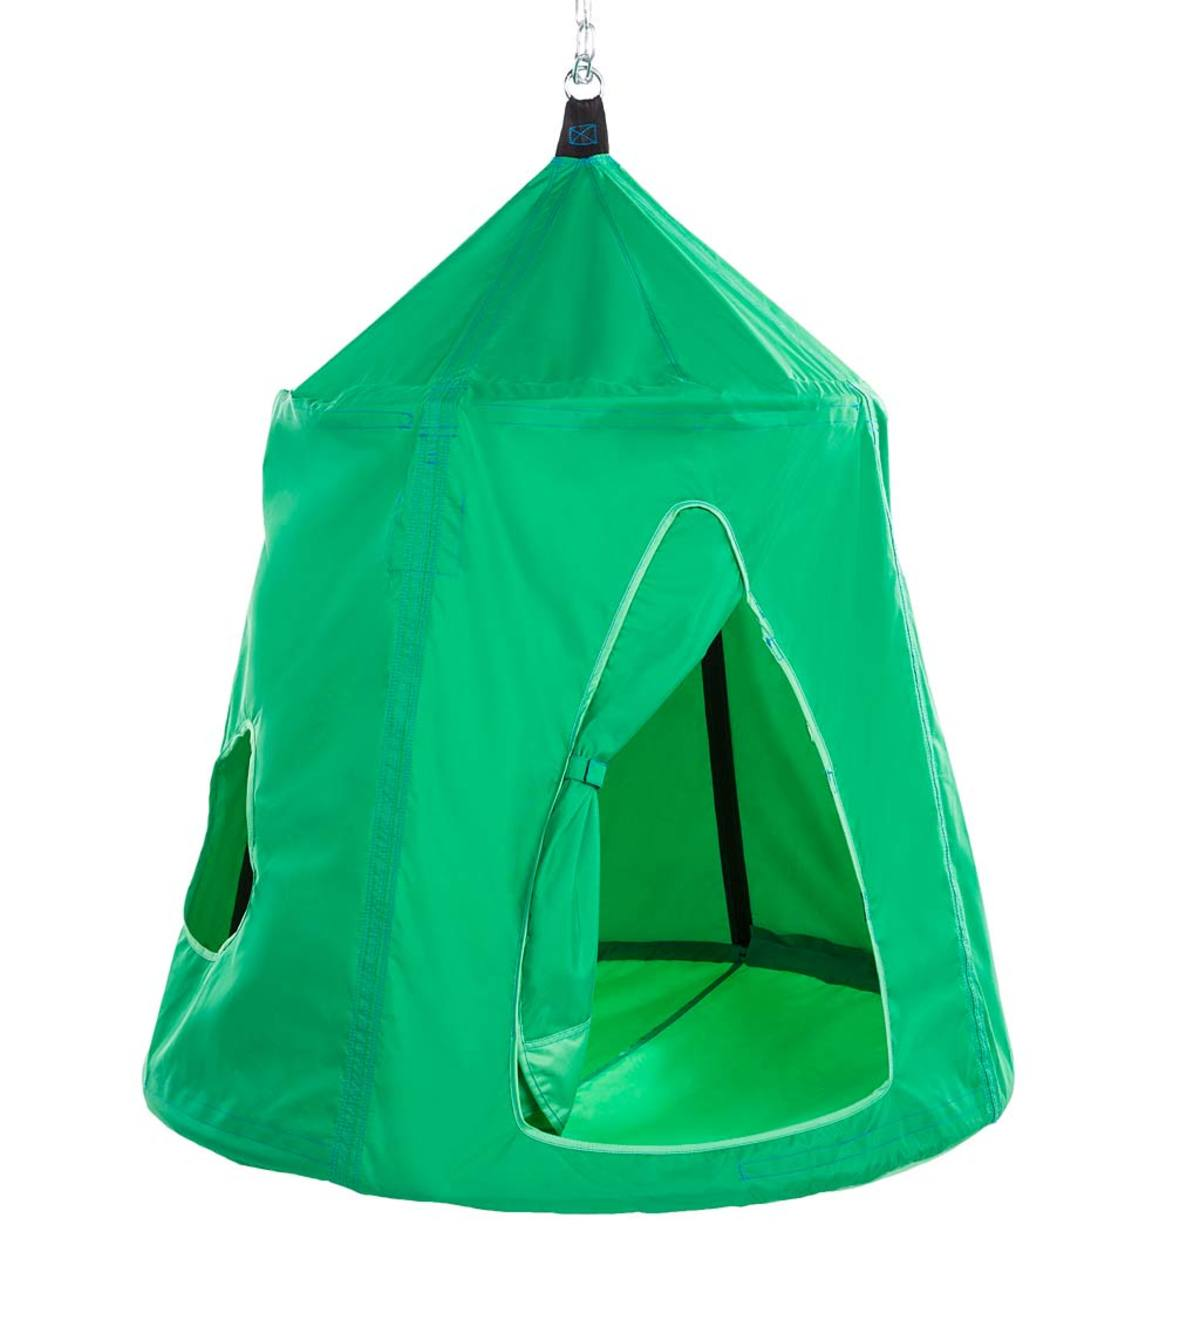 Go! HangOut HugglePod Hanging Tent with LED Lights - Spring Green